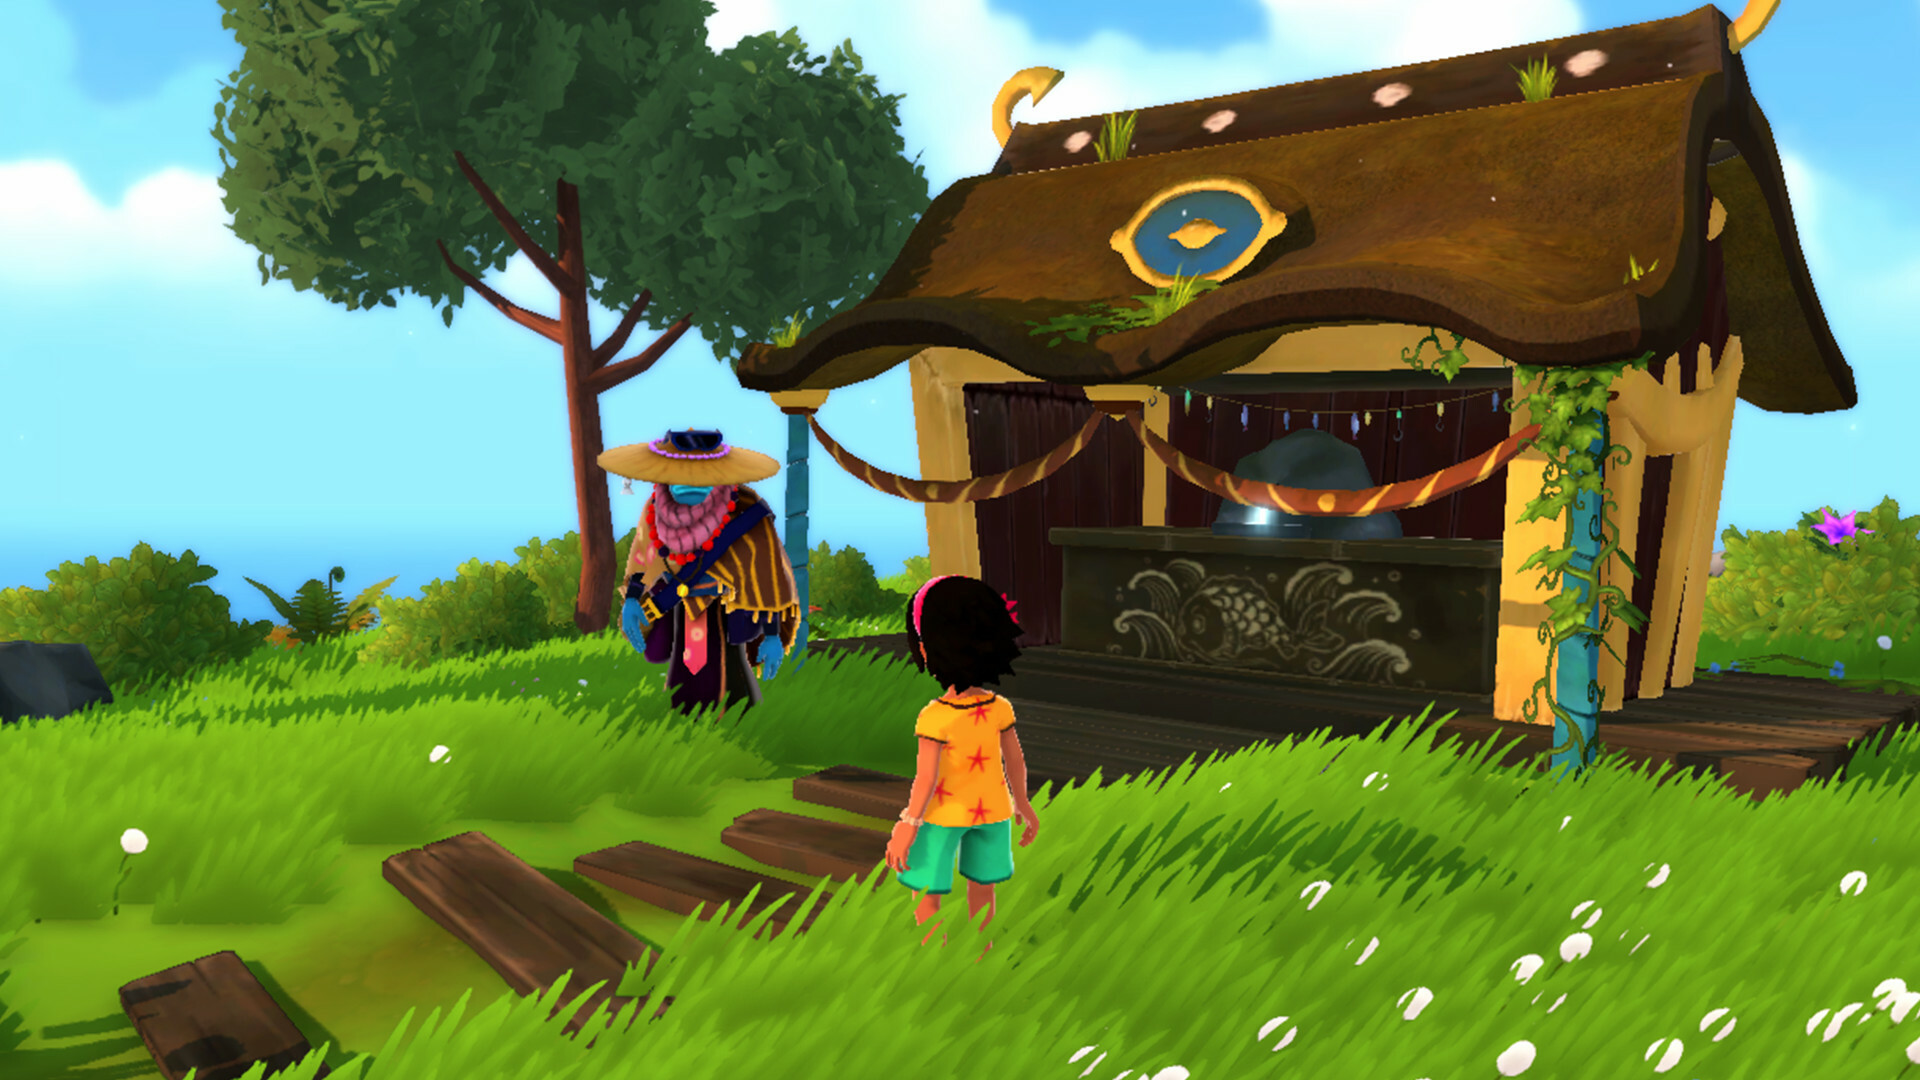 Summer in Mara screenshot 2